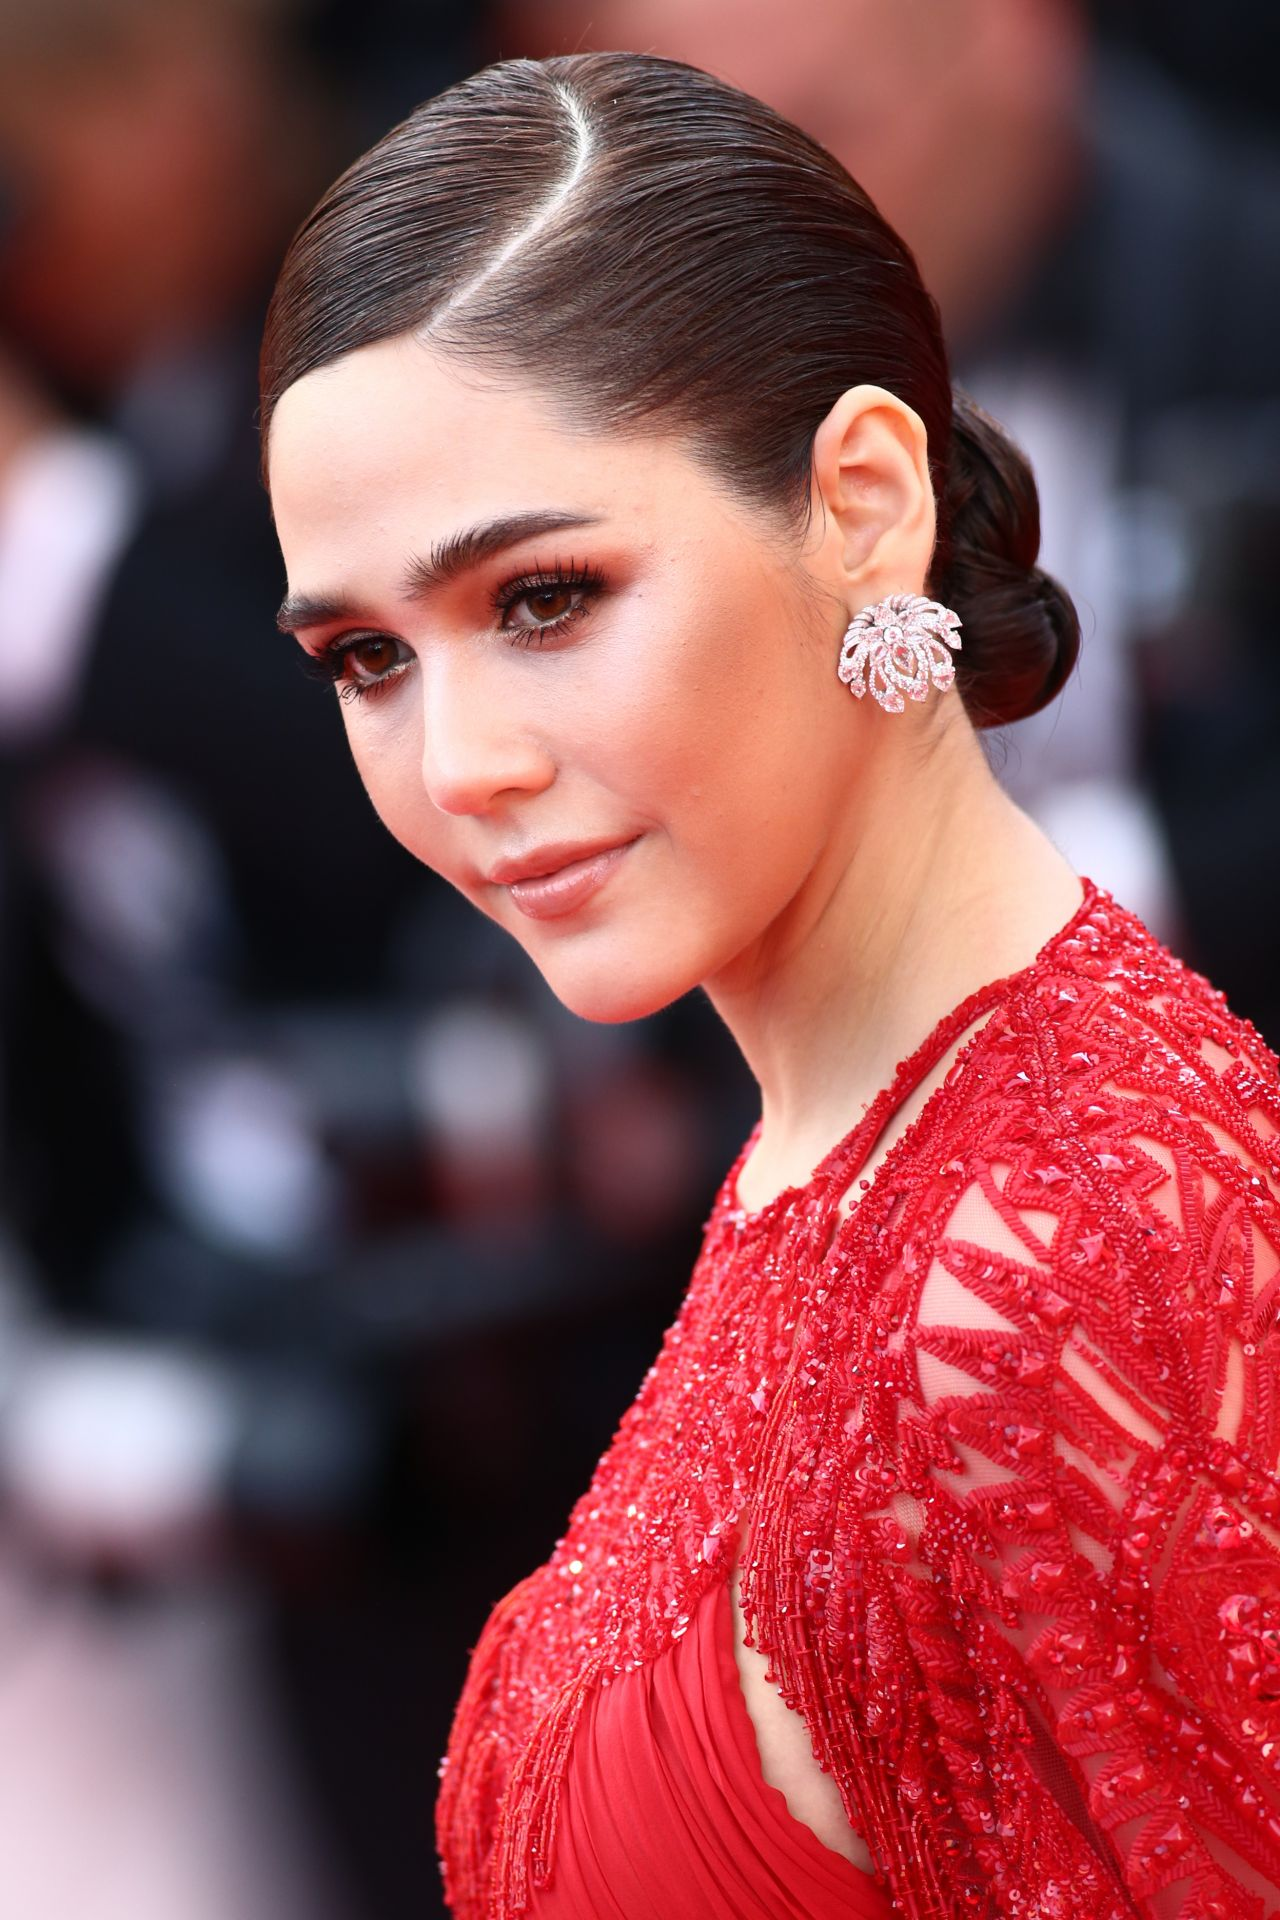 araya-hargate-everybody-knows-premiere-and-cannes-film-festival-2018-opening-ceremony-6